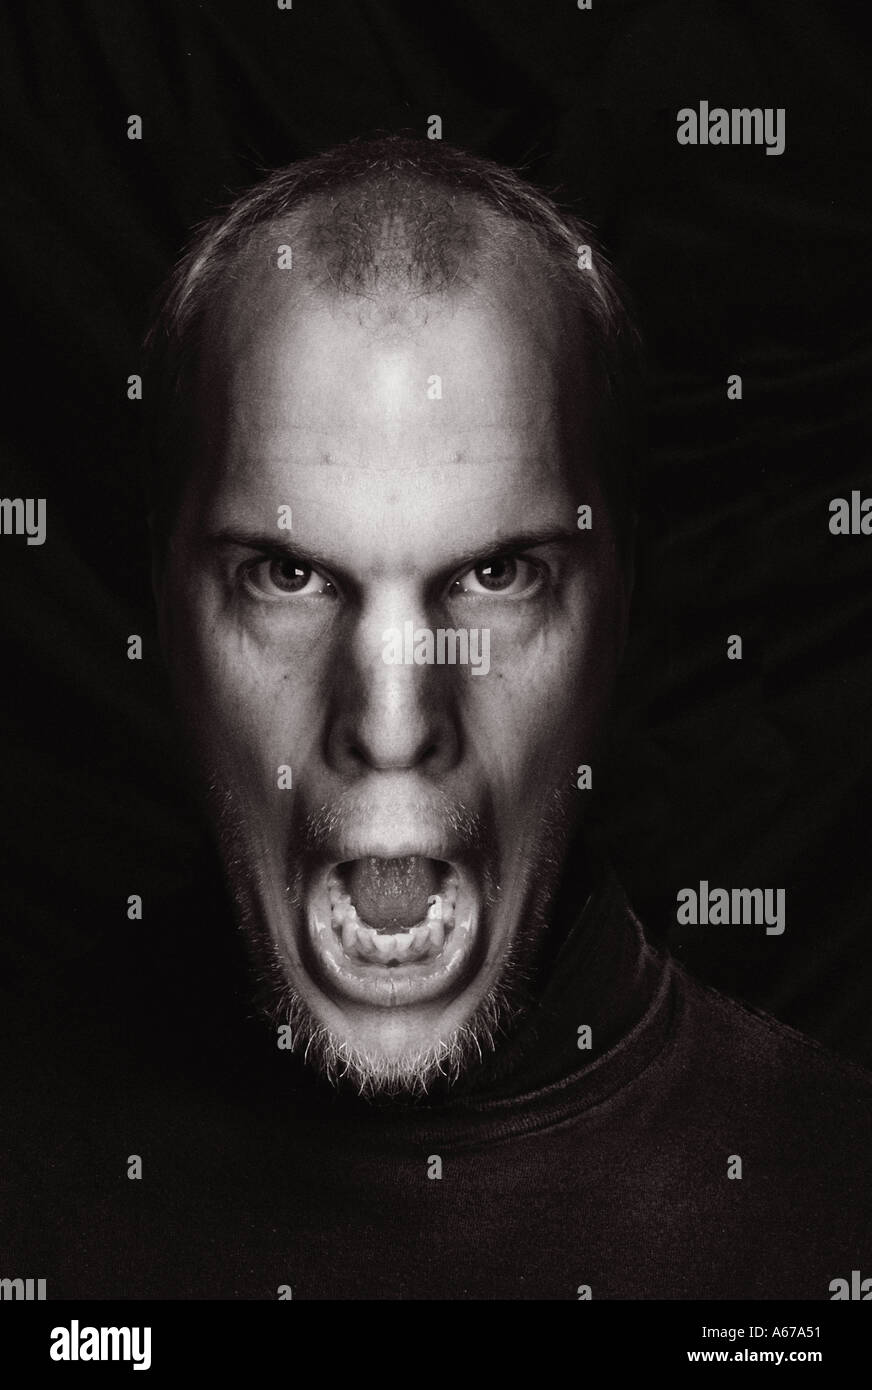 Surreale Screaming Mann s Gesicht illustration Stockfoto